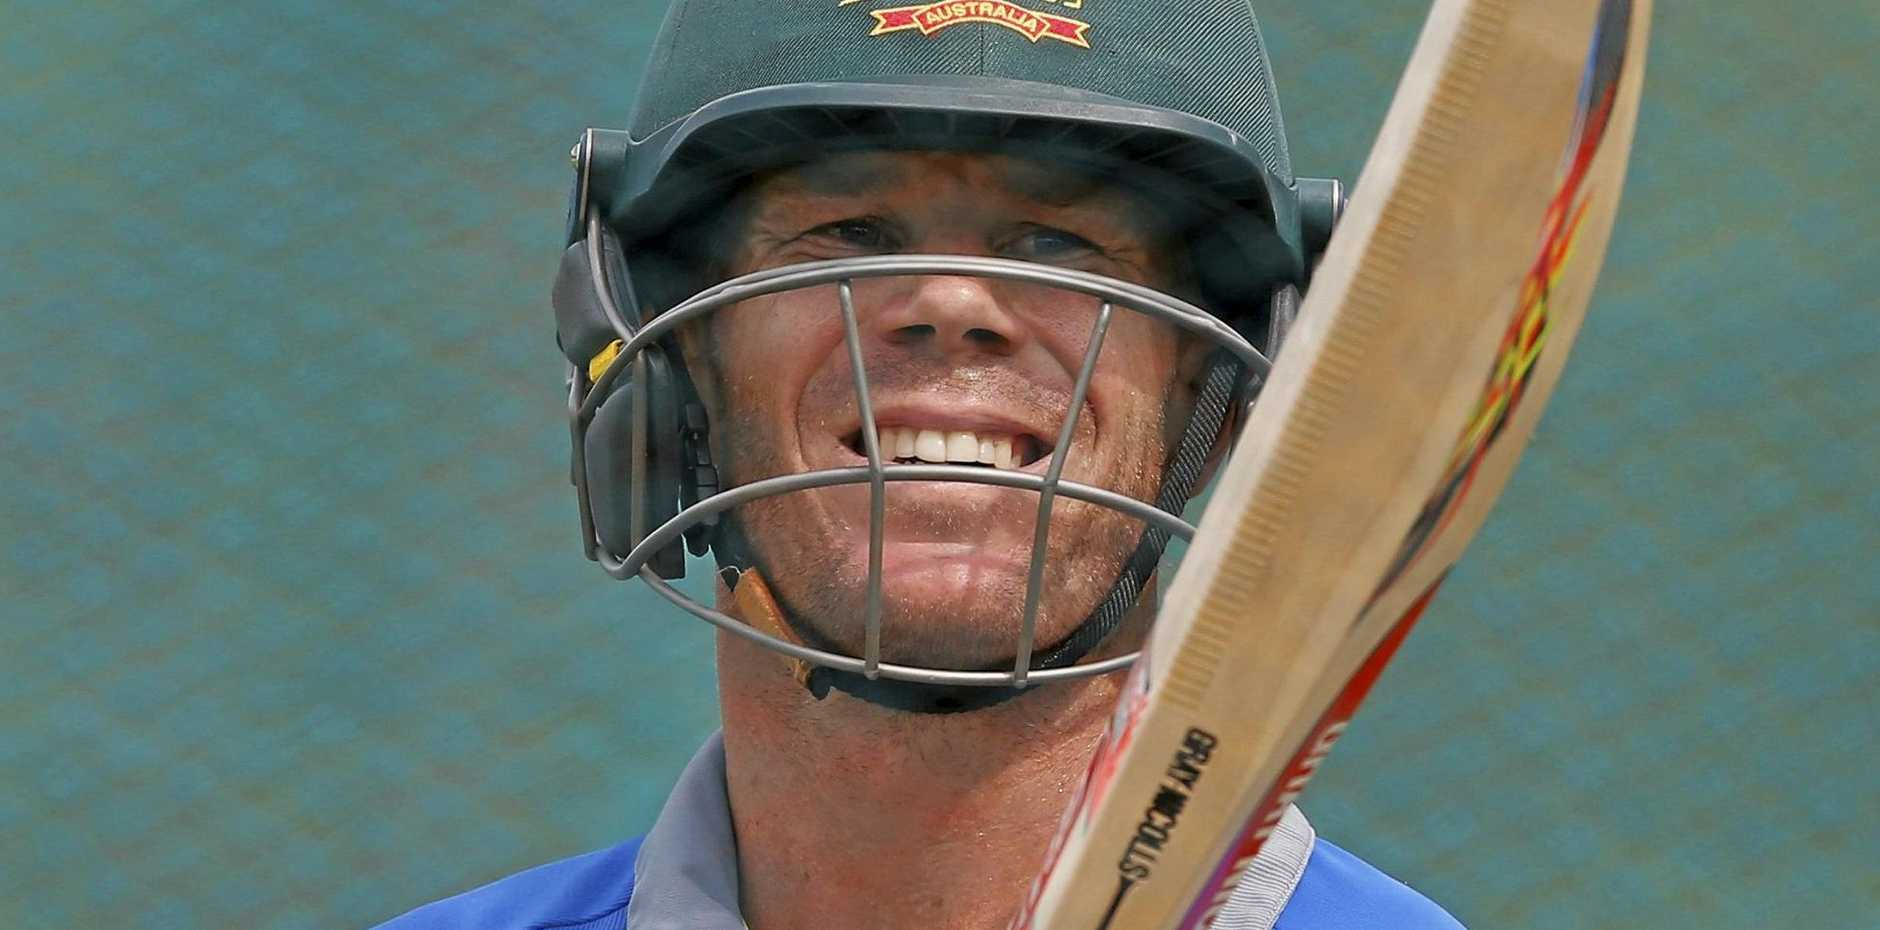 Australian cricketer David Warner during a net session.